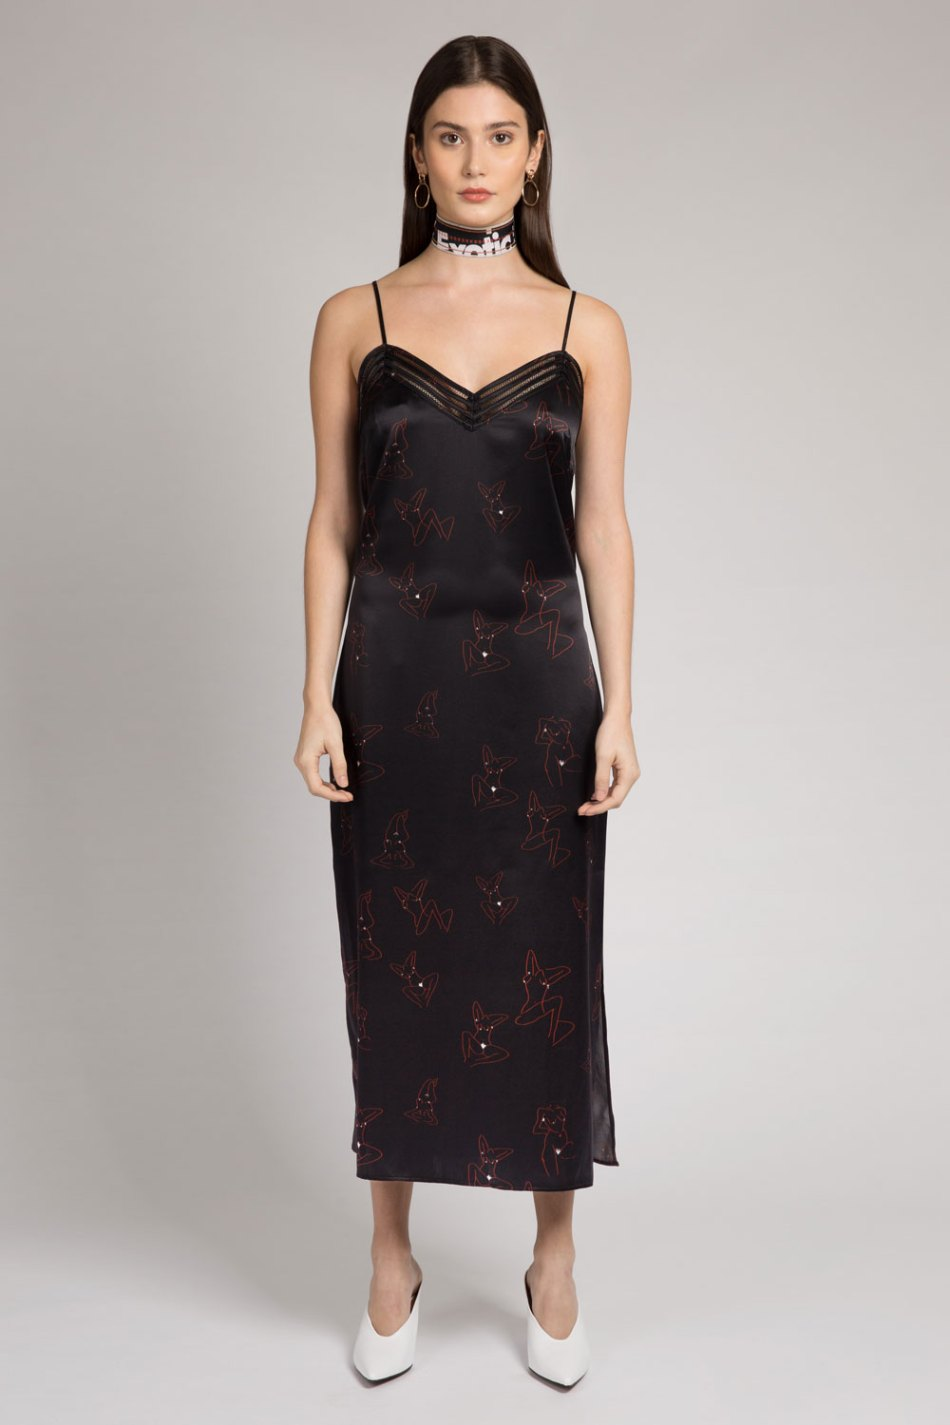 Black silk slip dress printed with a red artistic feminist print. A celebration of the female body and self love.